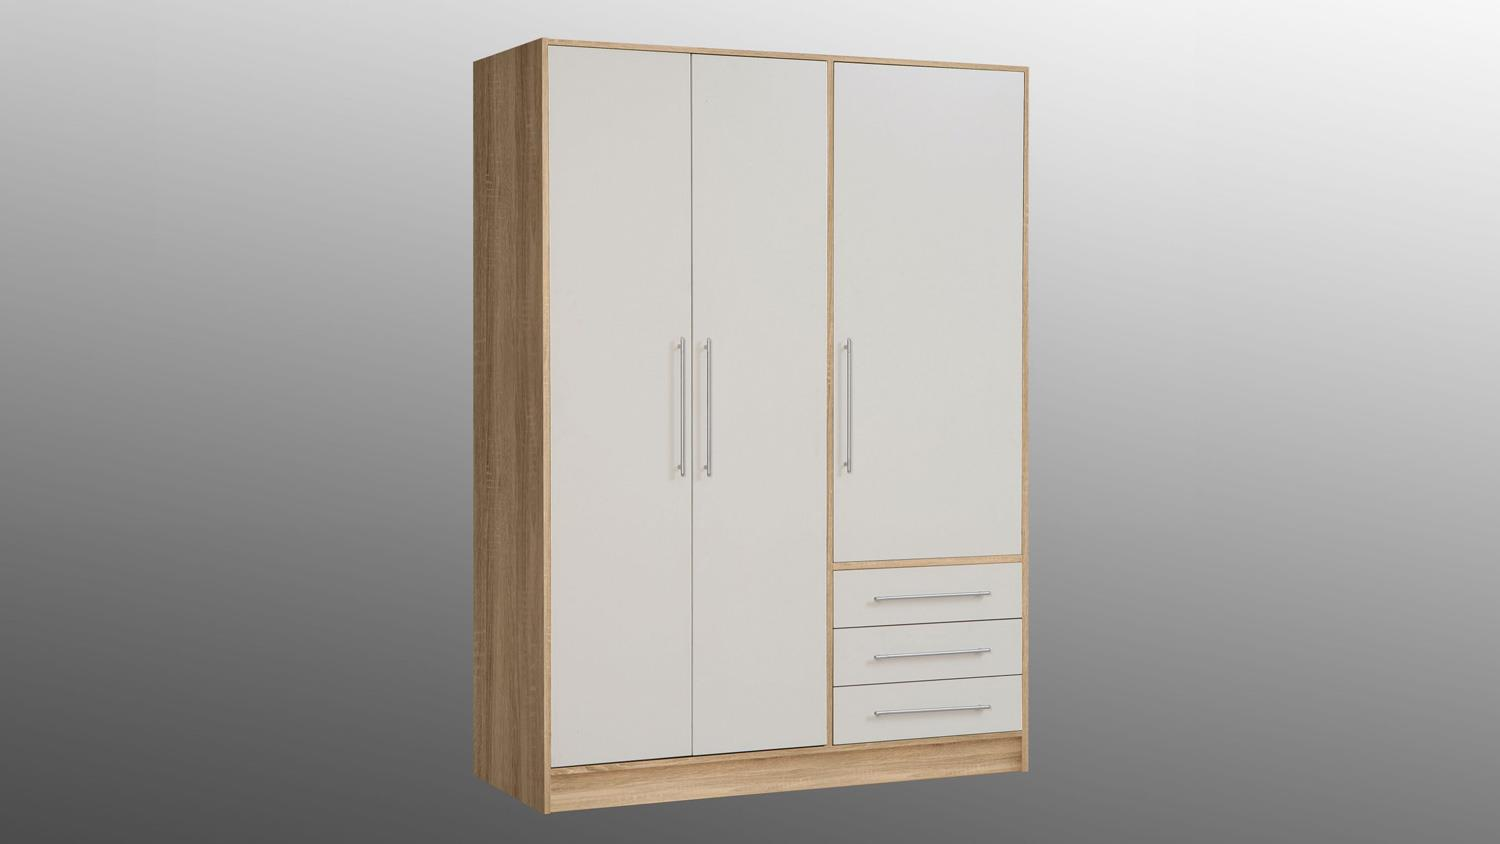 kleiderschrank jupiter schrank sonoma eiche wei 144 cm. Black Bedroom Furniture Sets. Home Design Ideas